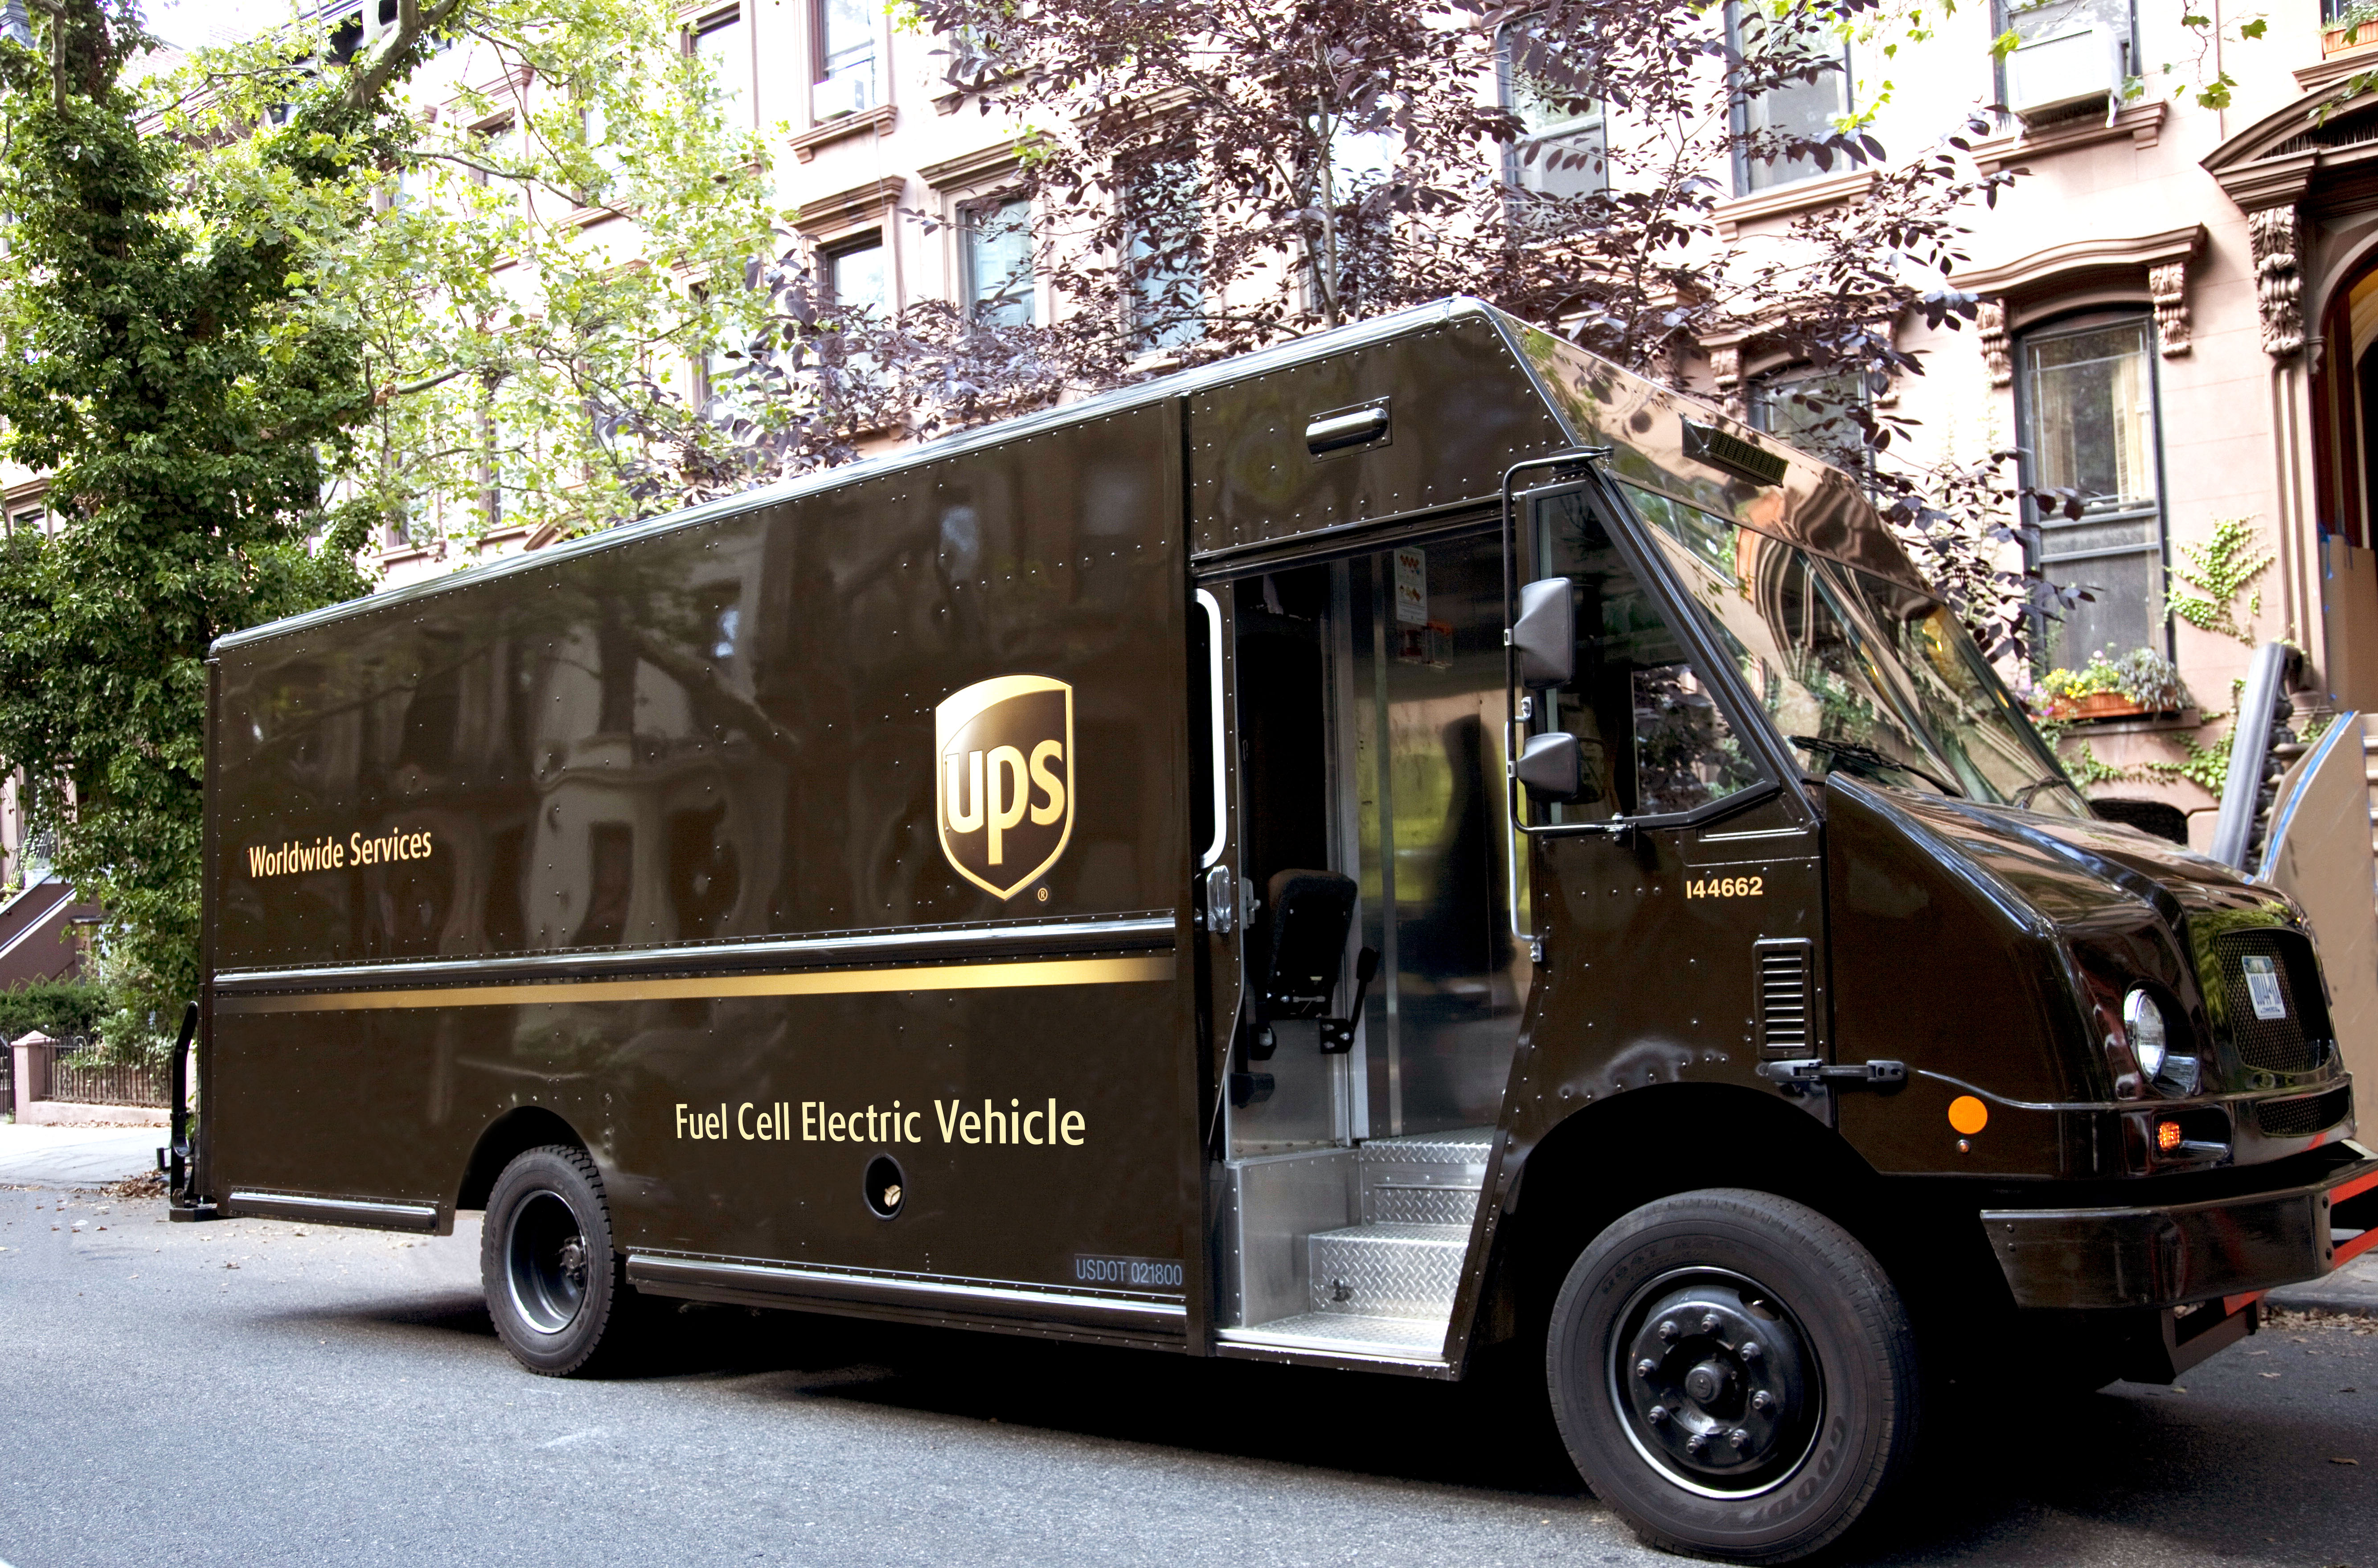 Ups In Handshake Deal With The Teamsters Union Air Cargo News